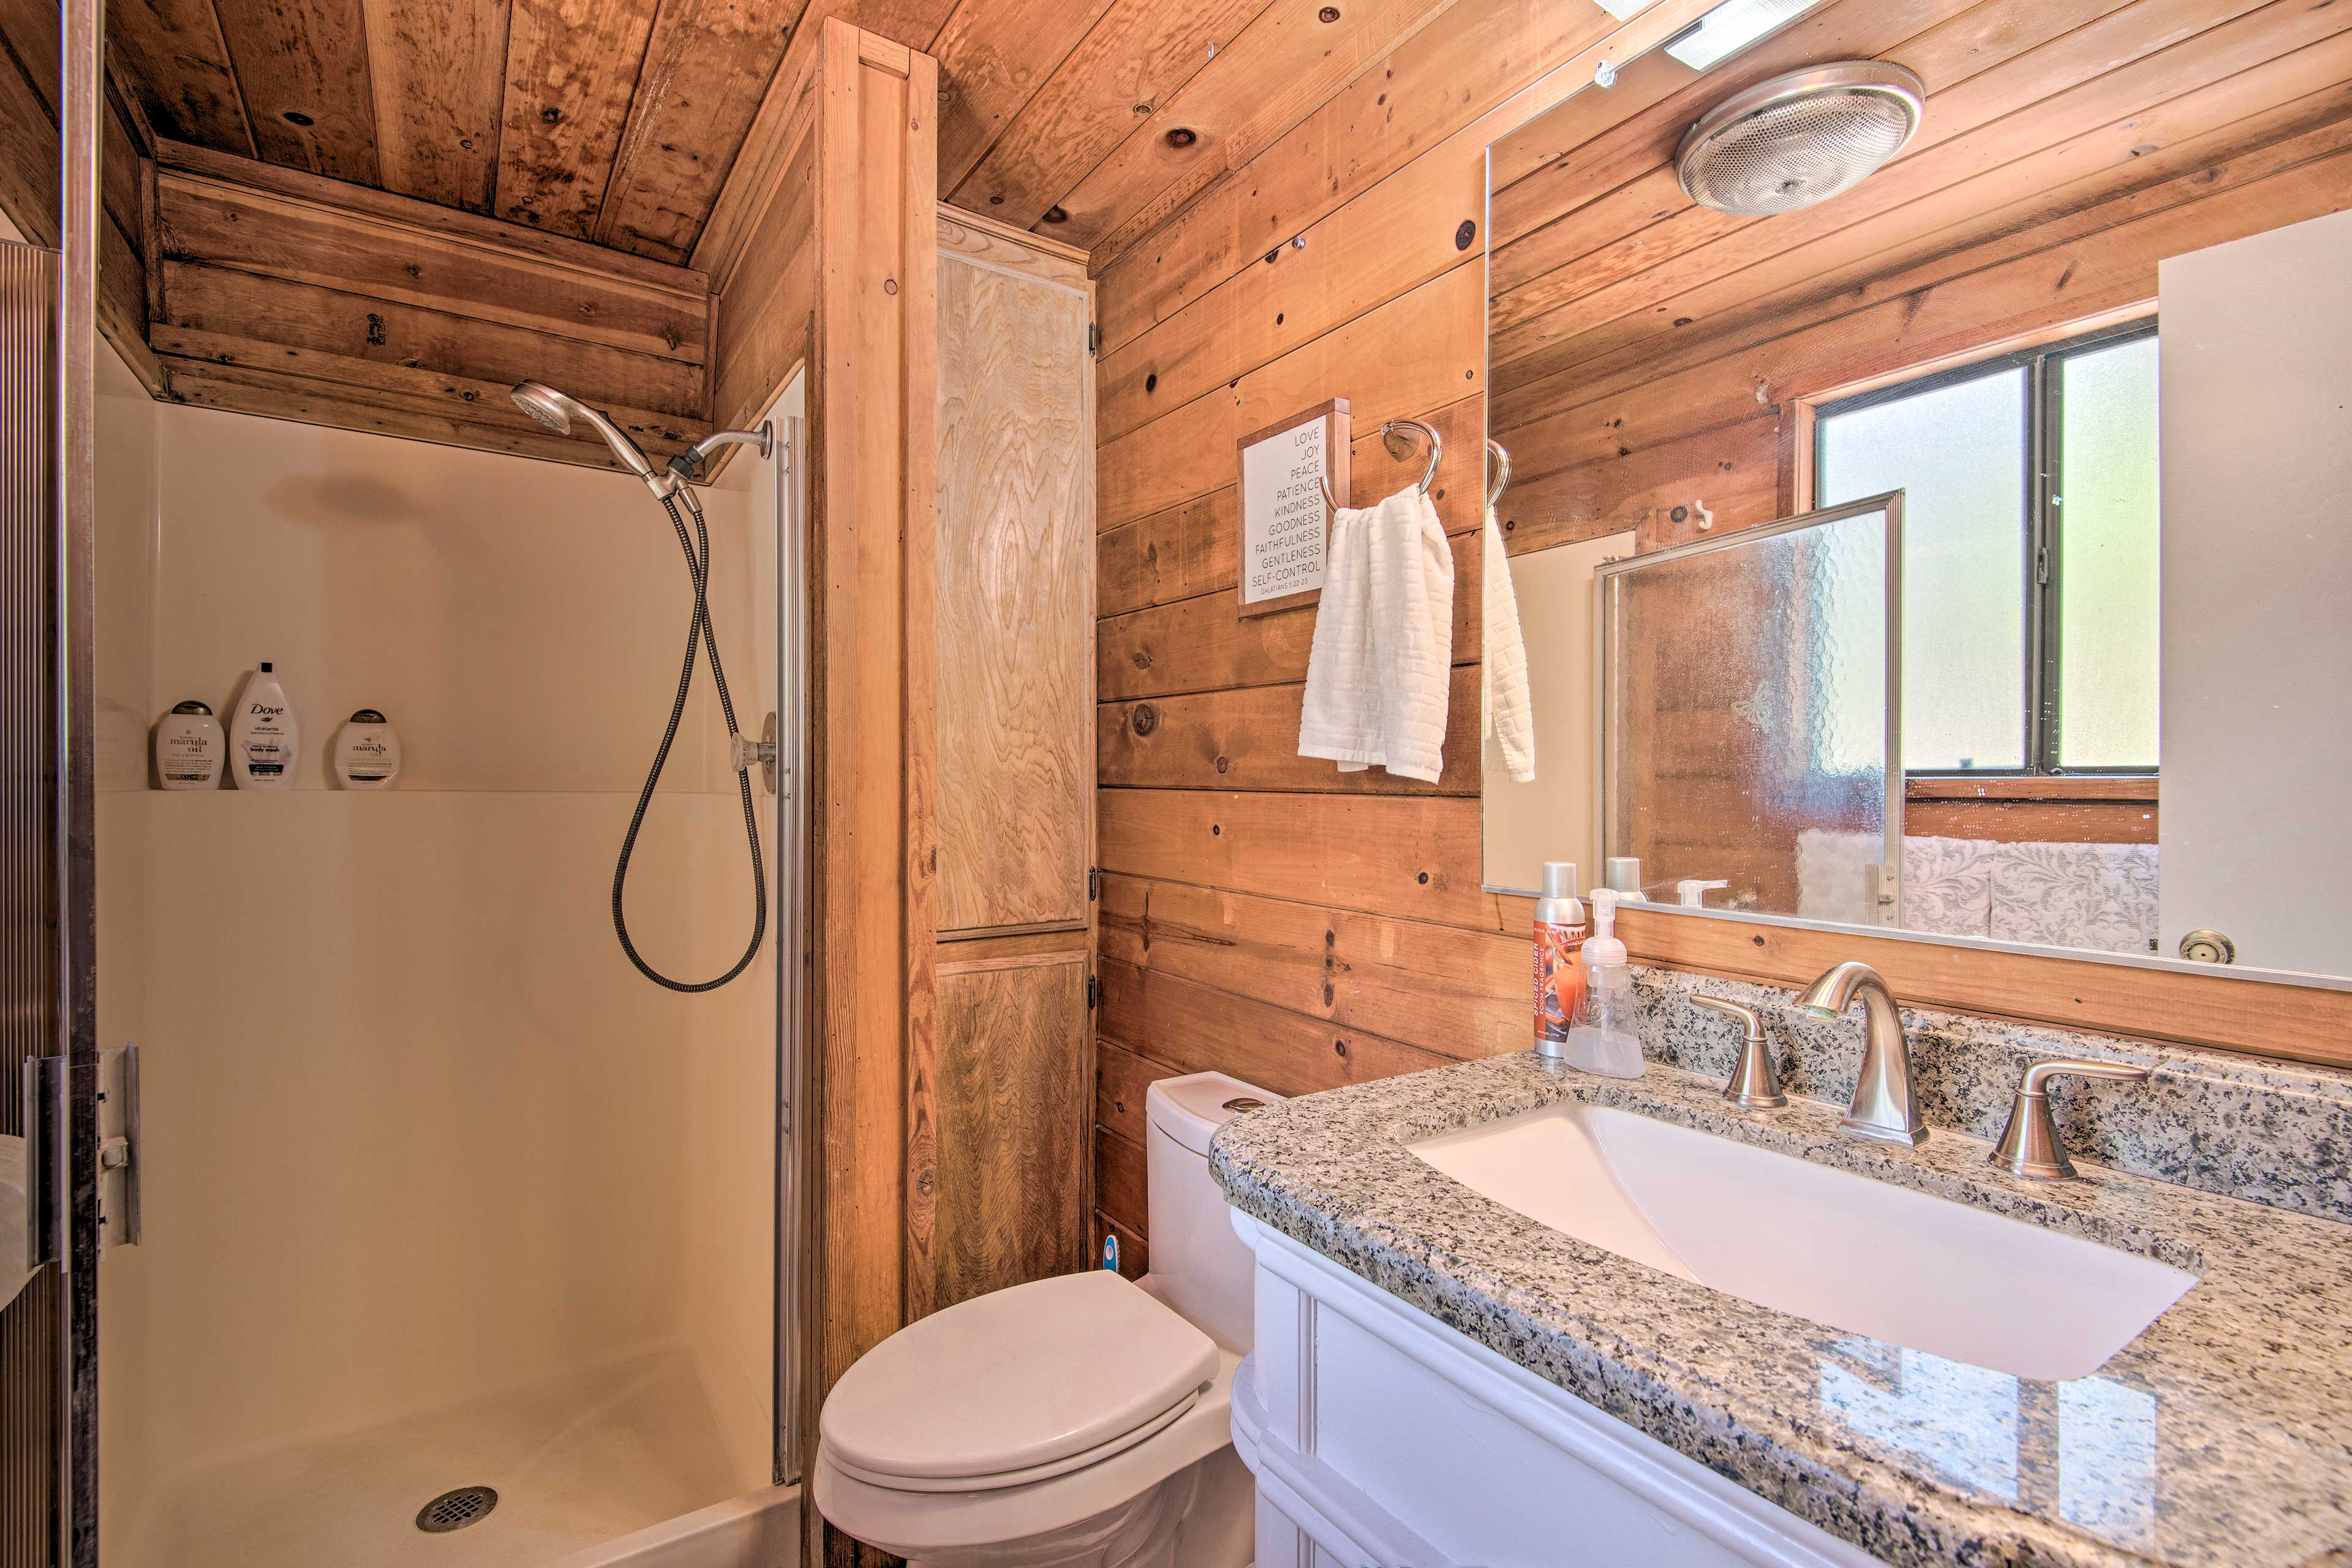 A walk-in shower is perfect for rinsing off the day's hike!